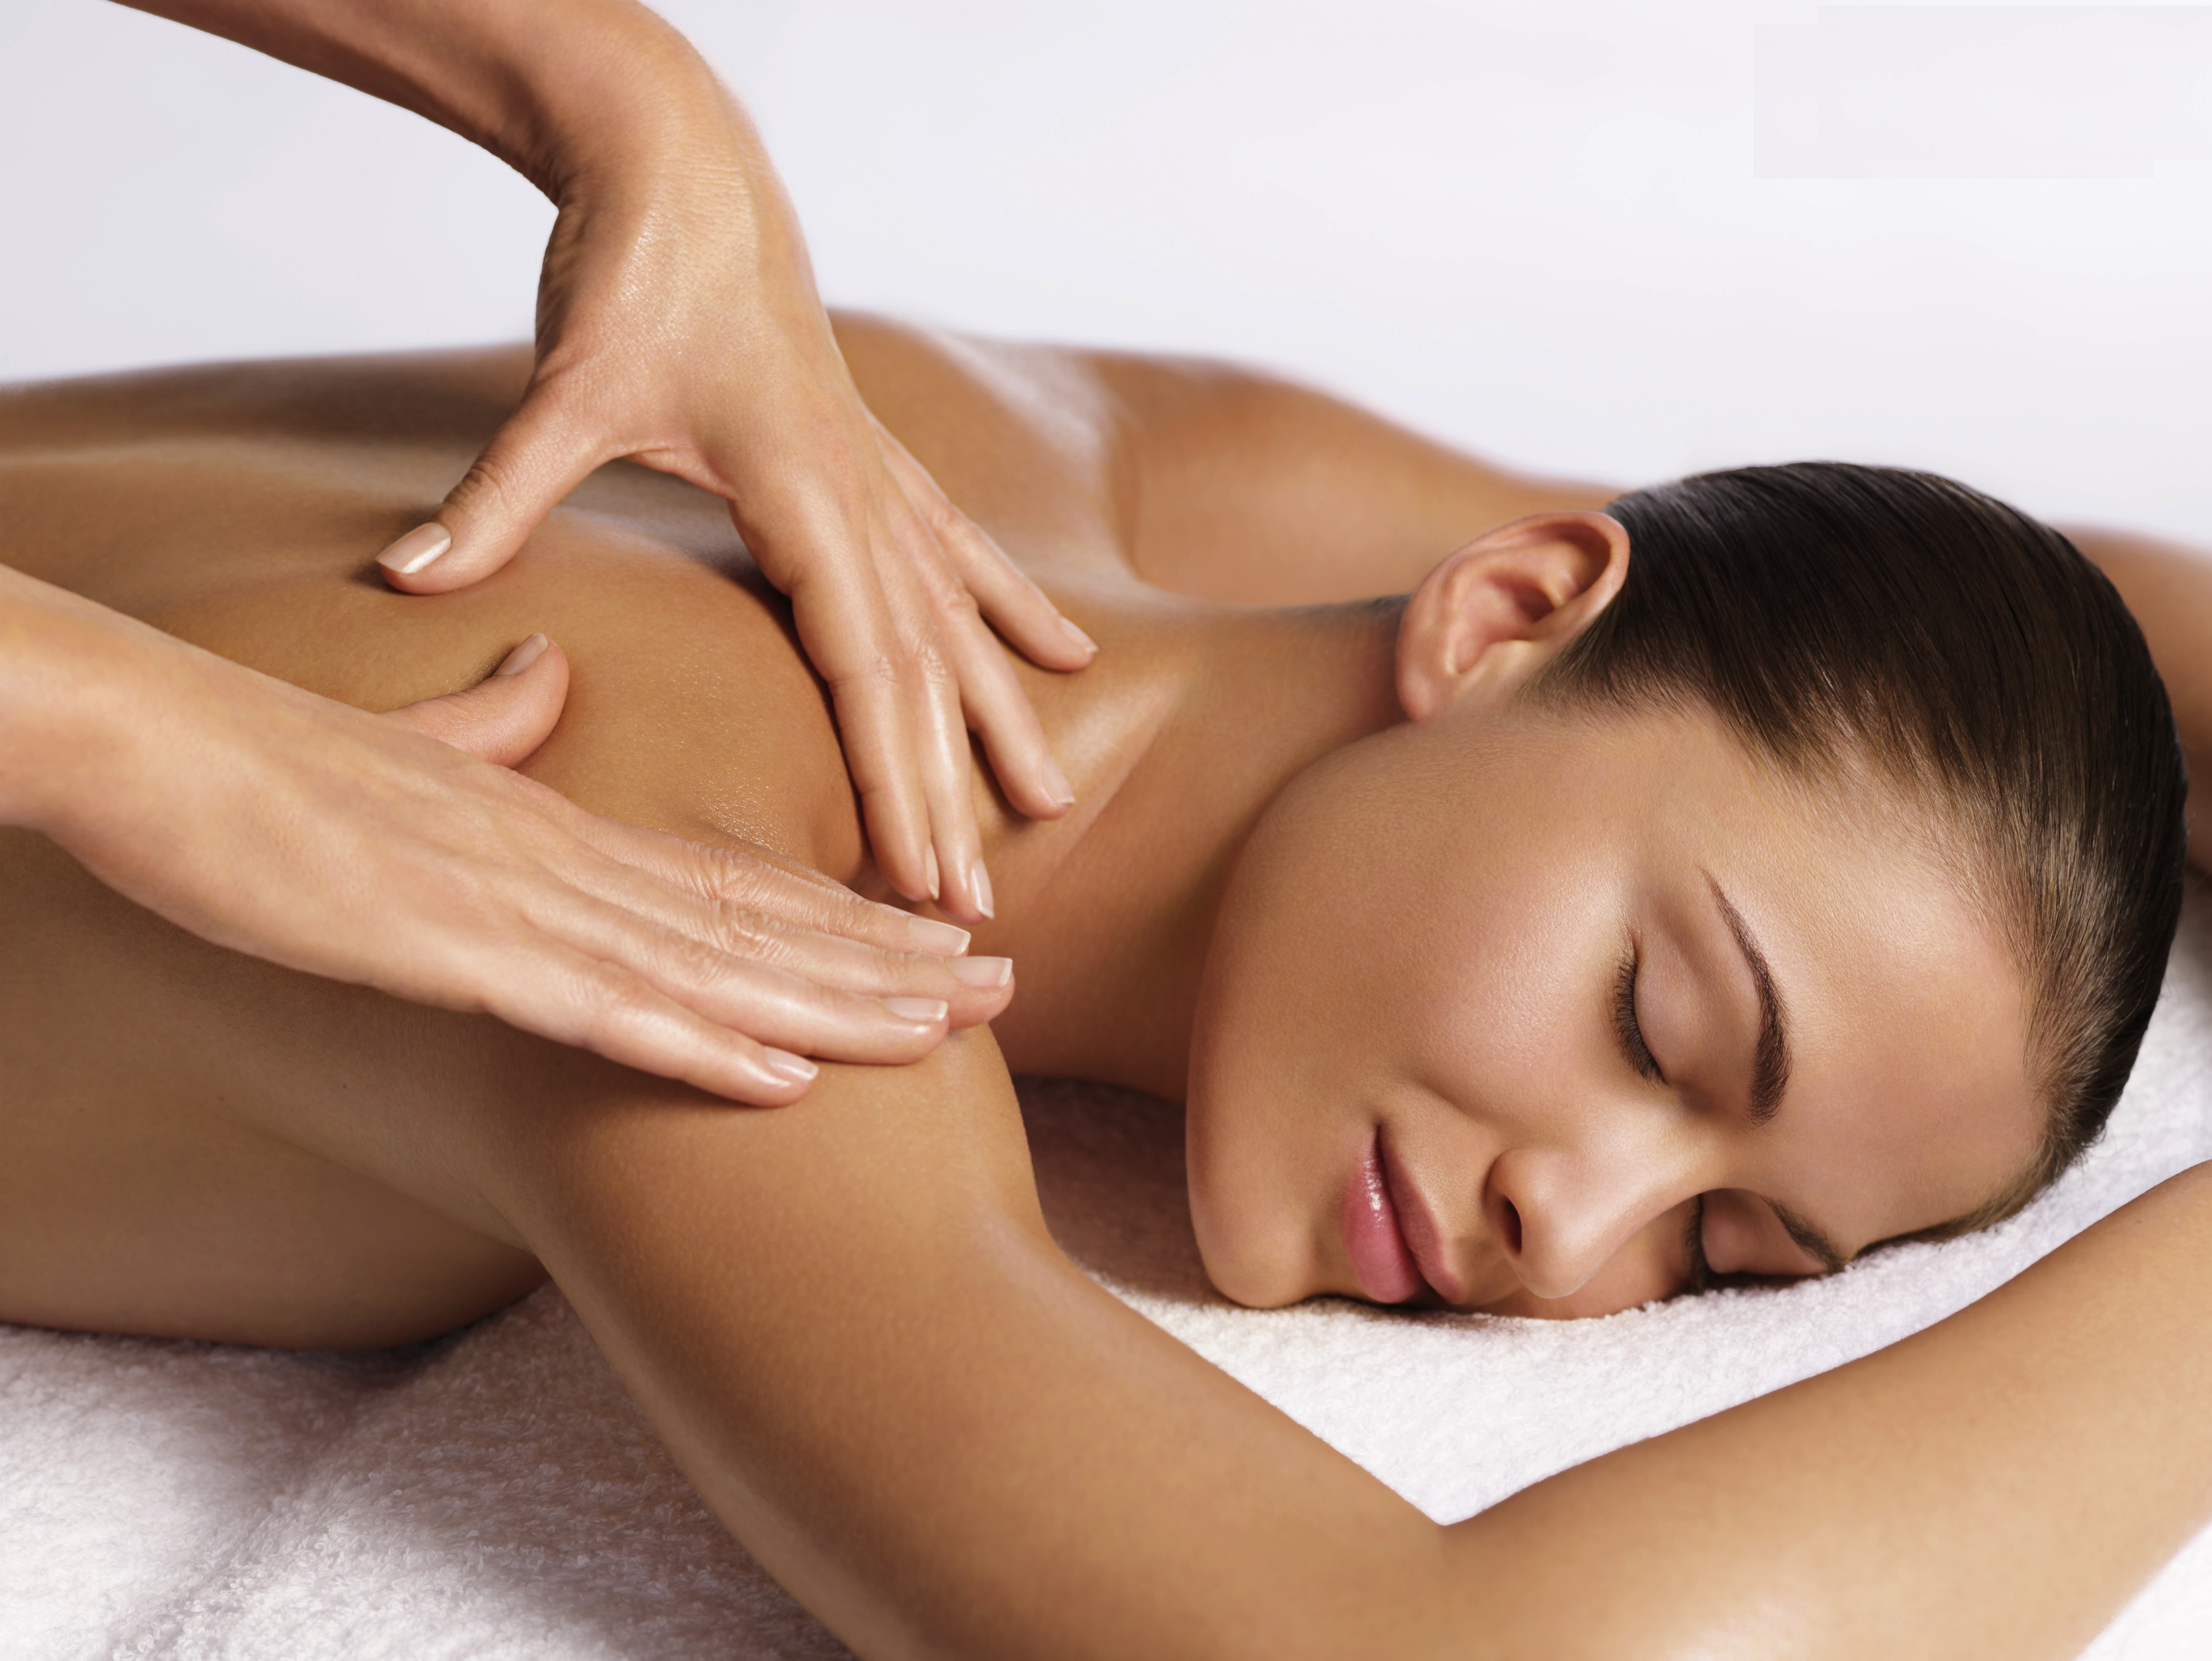 Stressed Look towards massage therapy SiOWfa14 Science in Our